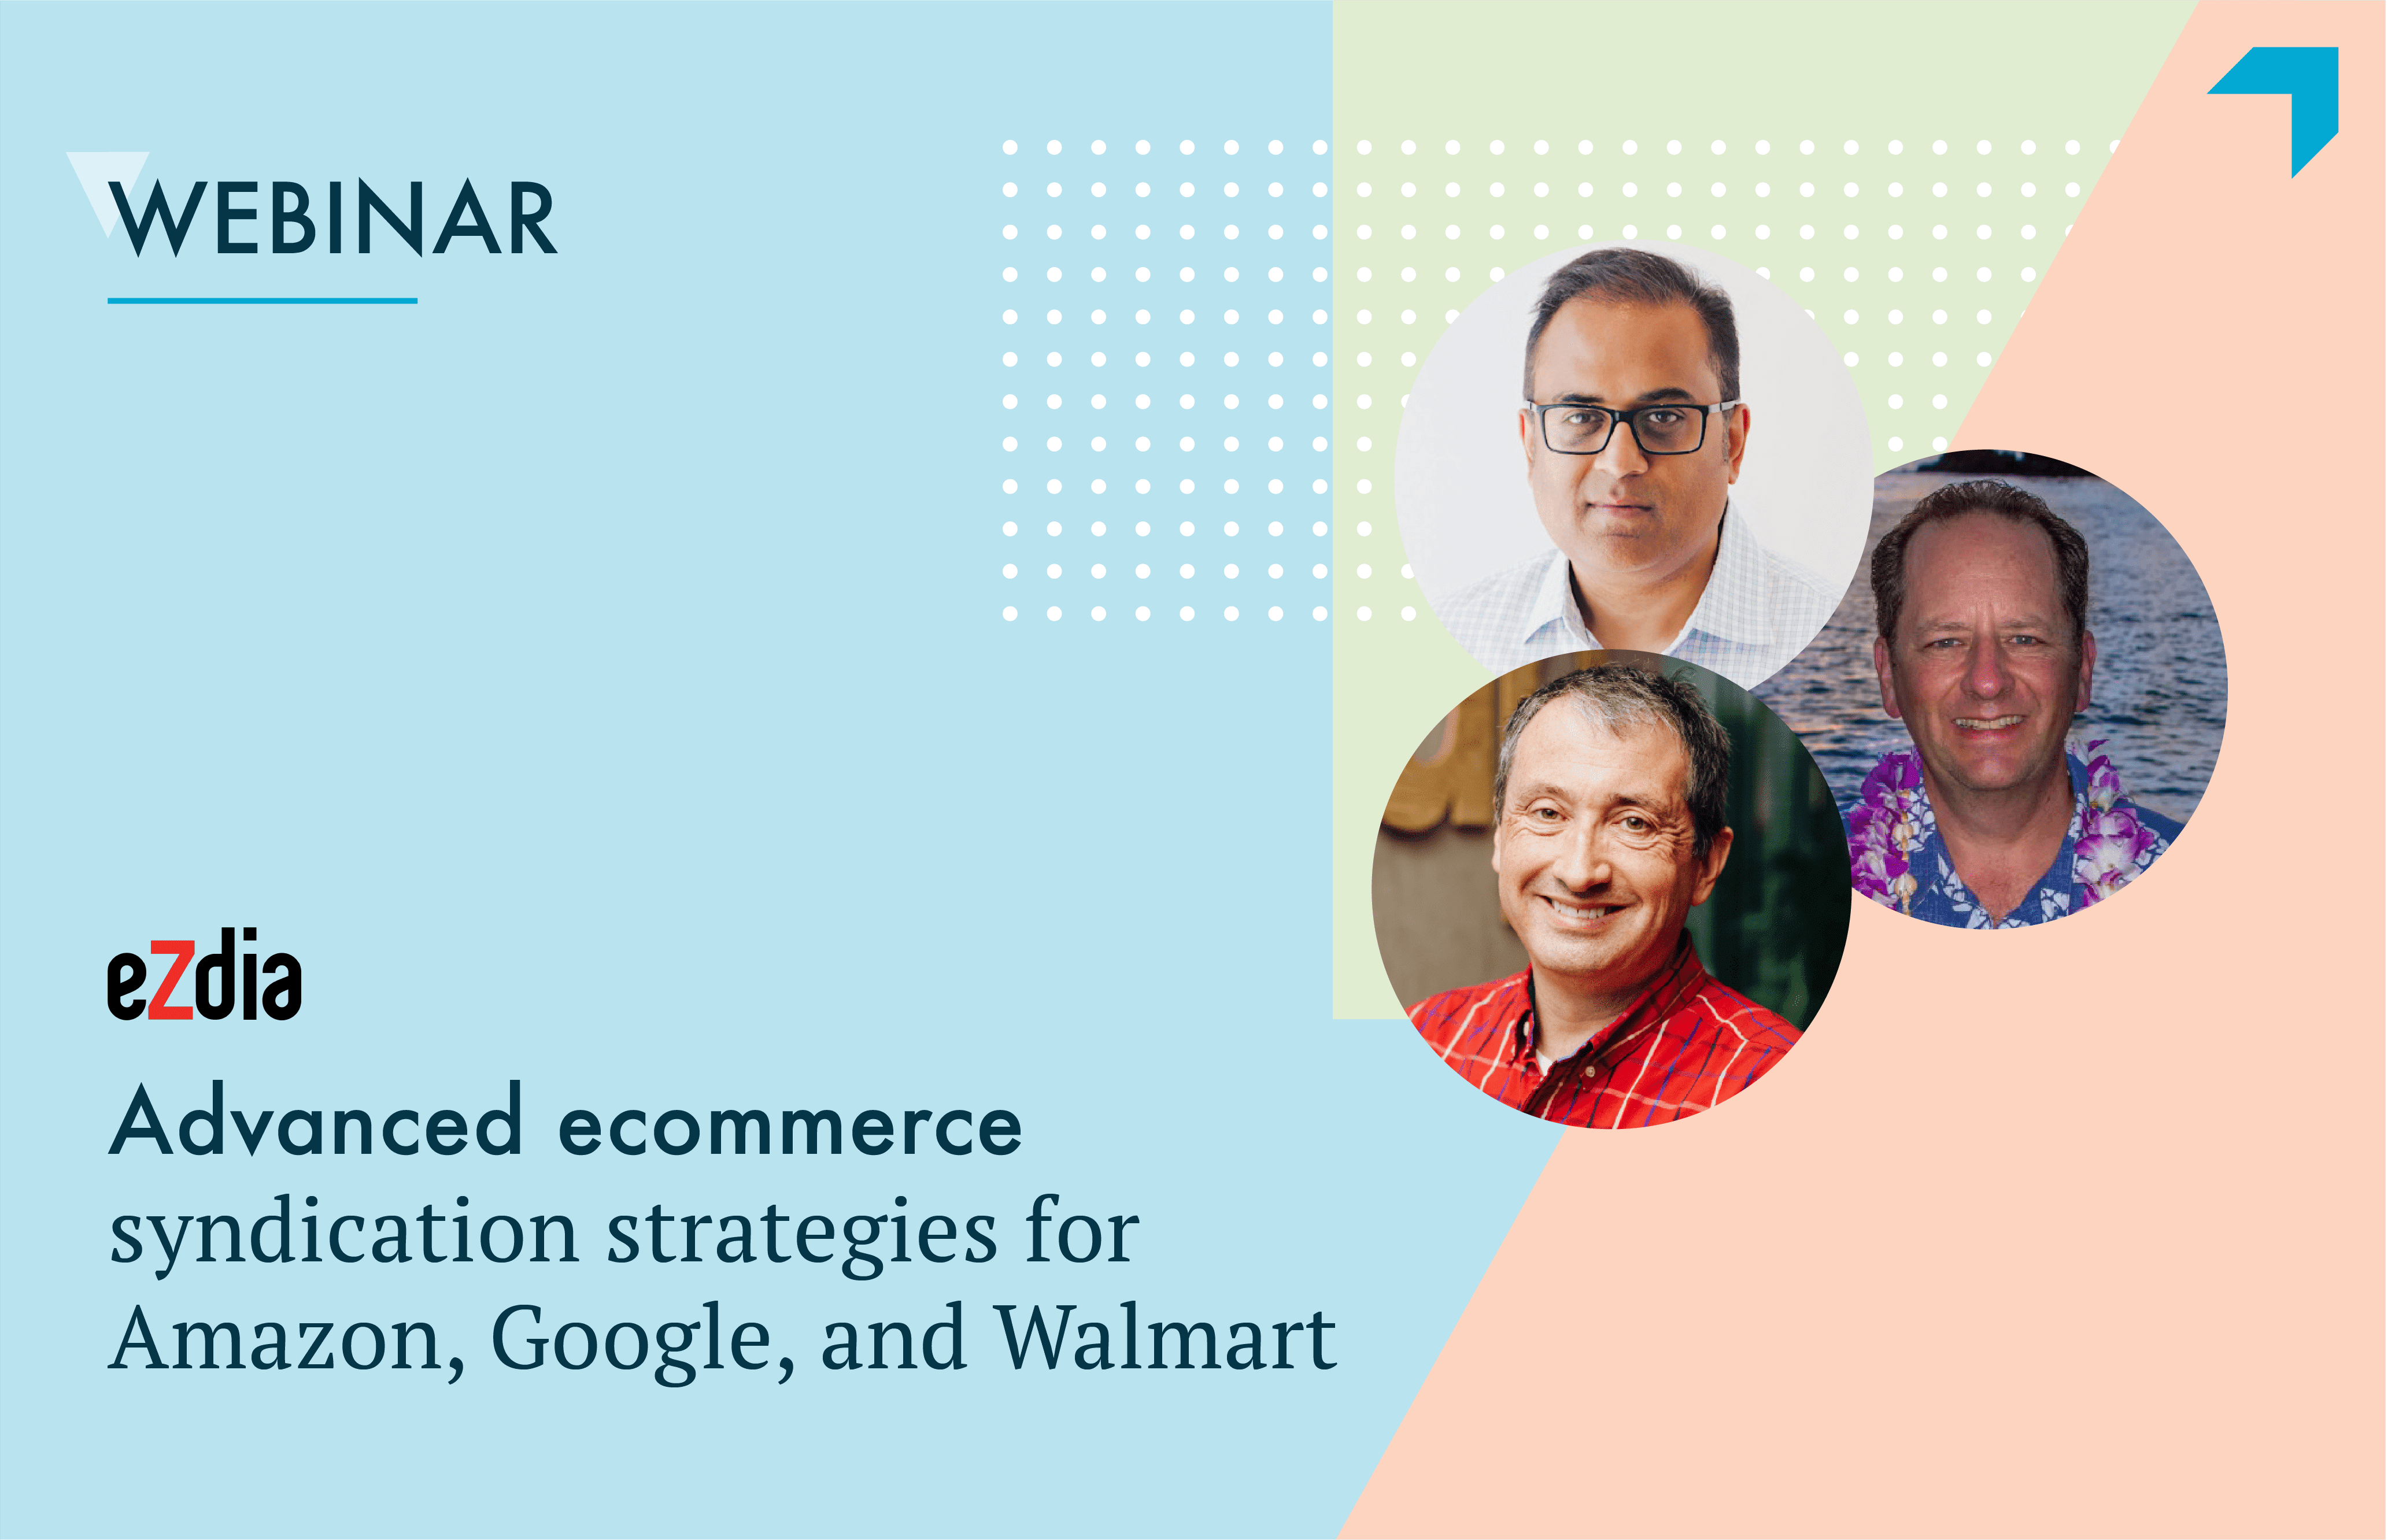 Advanced ecommerce syndication strategies for Amazon, Google, and Walmart